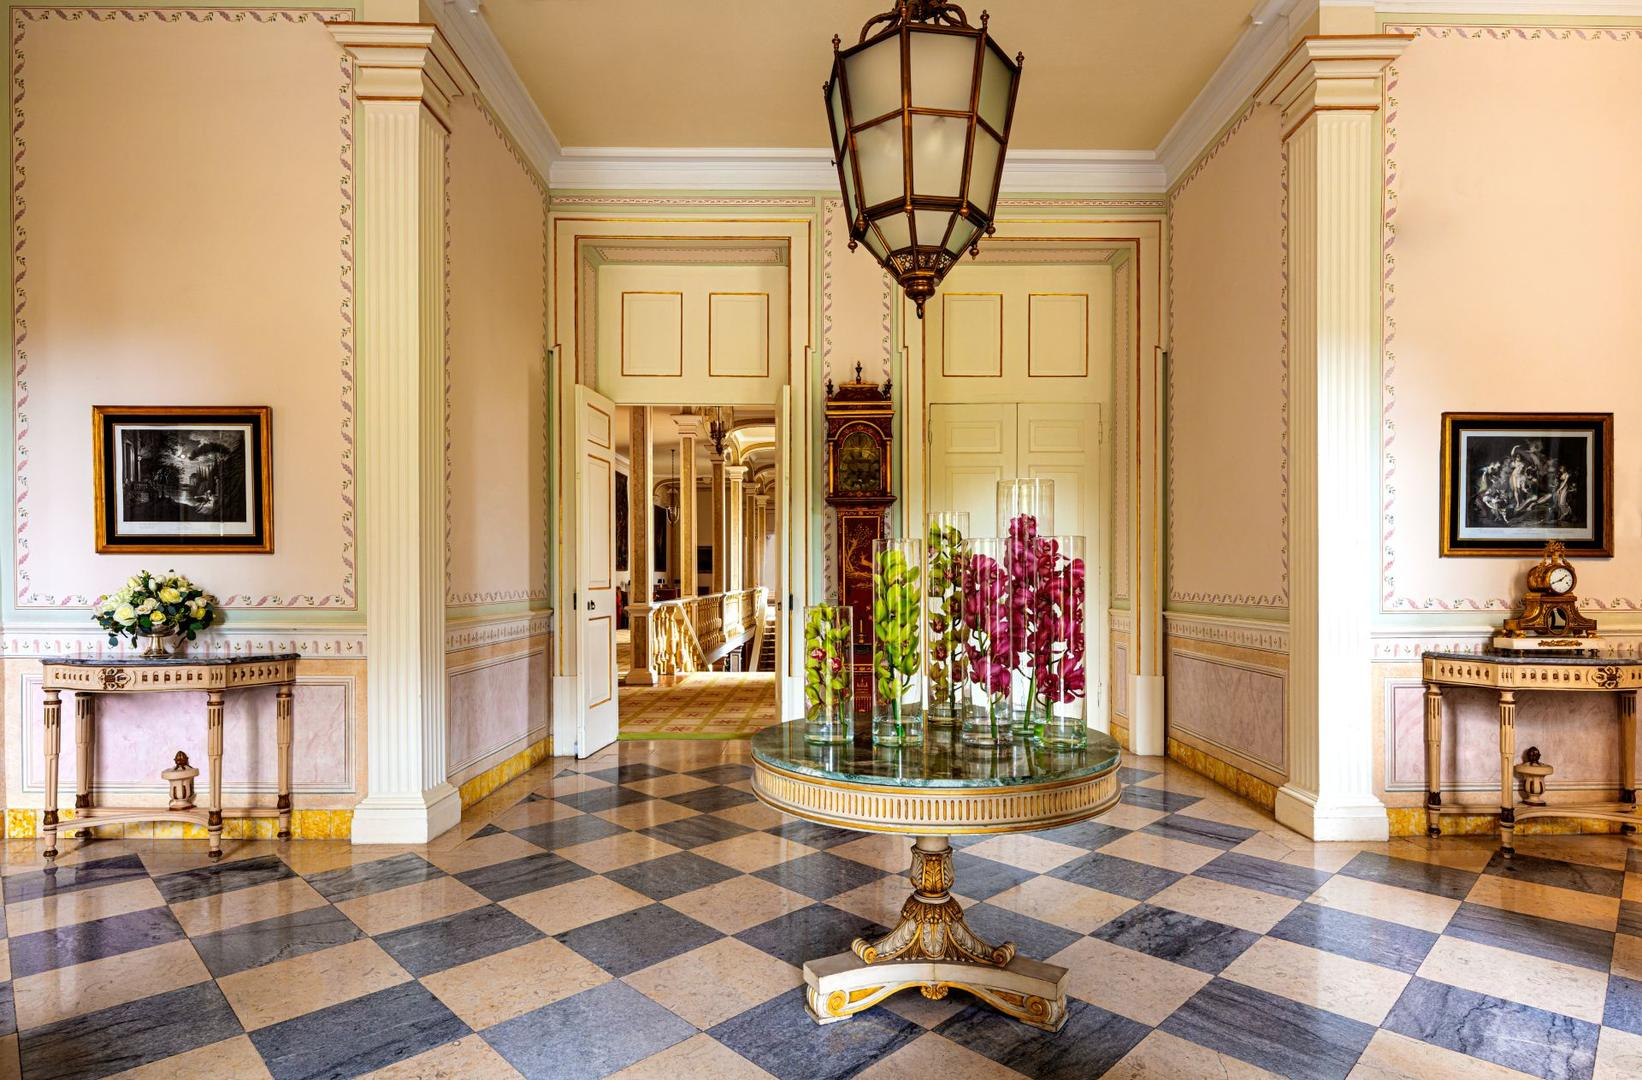 TPDS_Hotel_Lobby